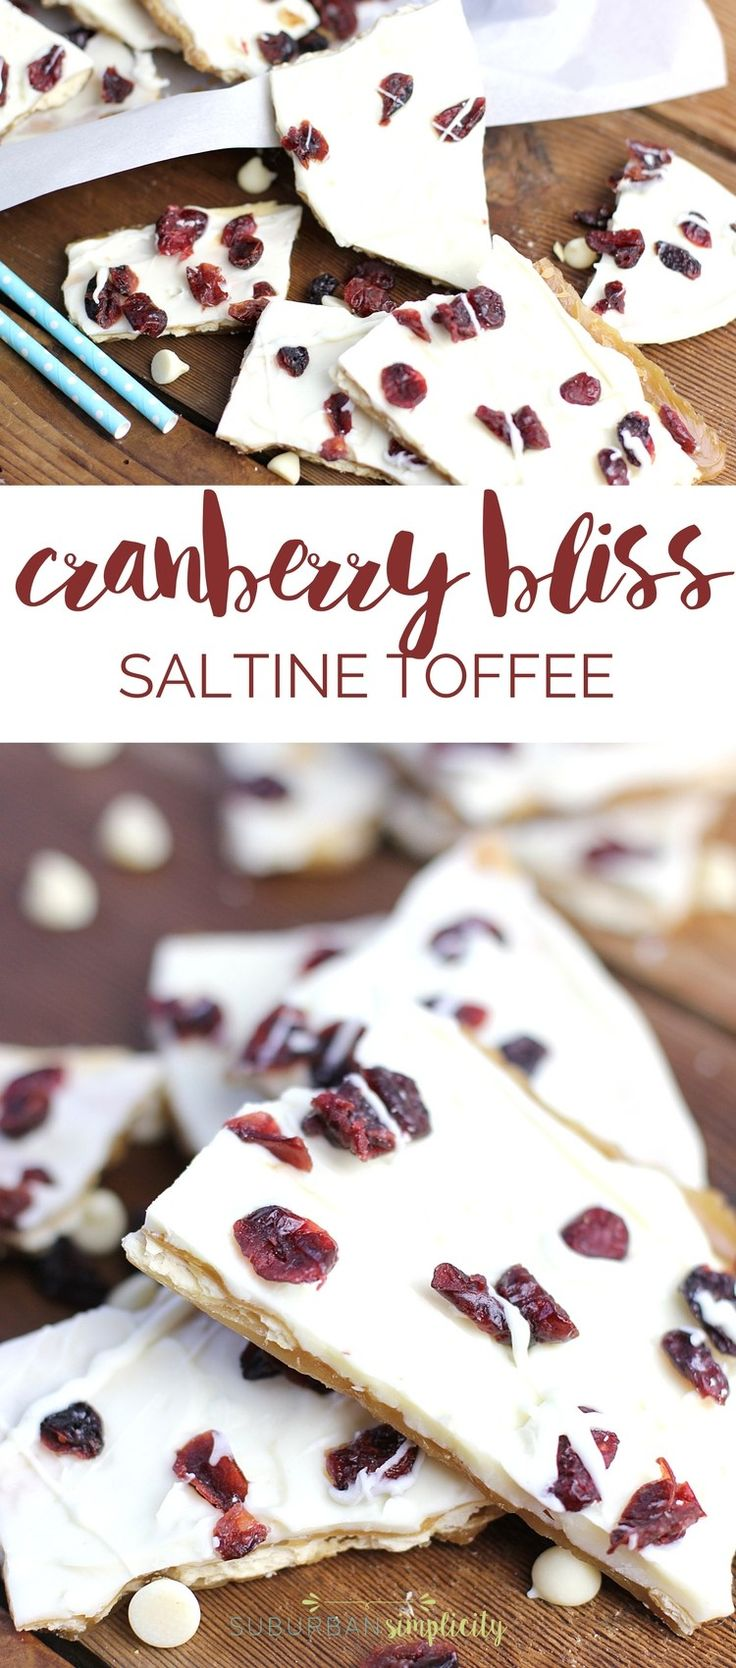 Cranberry Bliss Saltine Toffee is the best holiday treat idea! Crispy crackers, sweet caramel and melted white chocolate topped with tart cranberries. The perfect dessert combination! #cranberryblissrecipes #holidaydessert